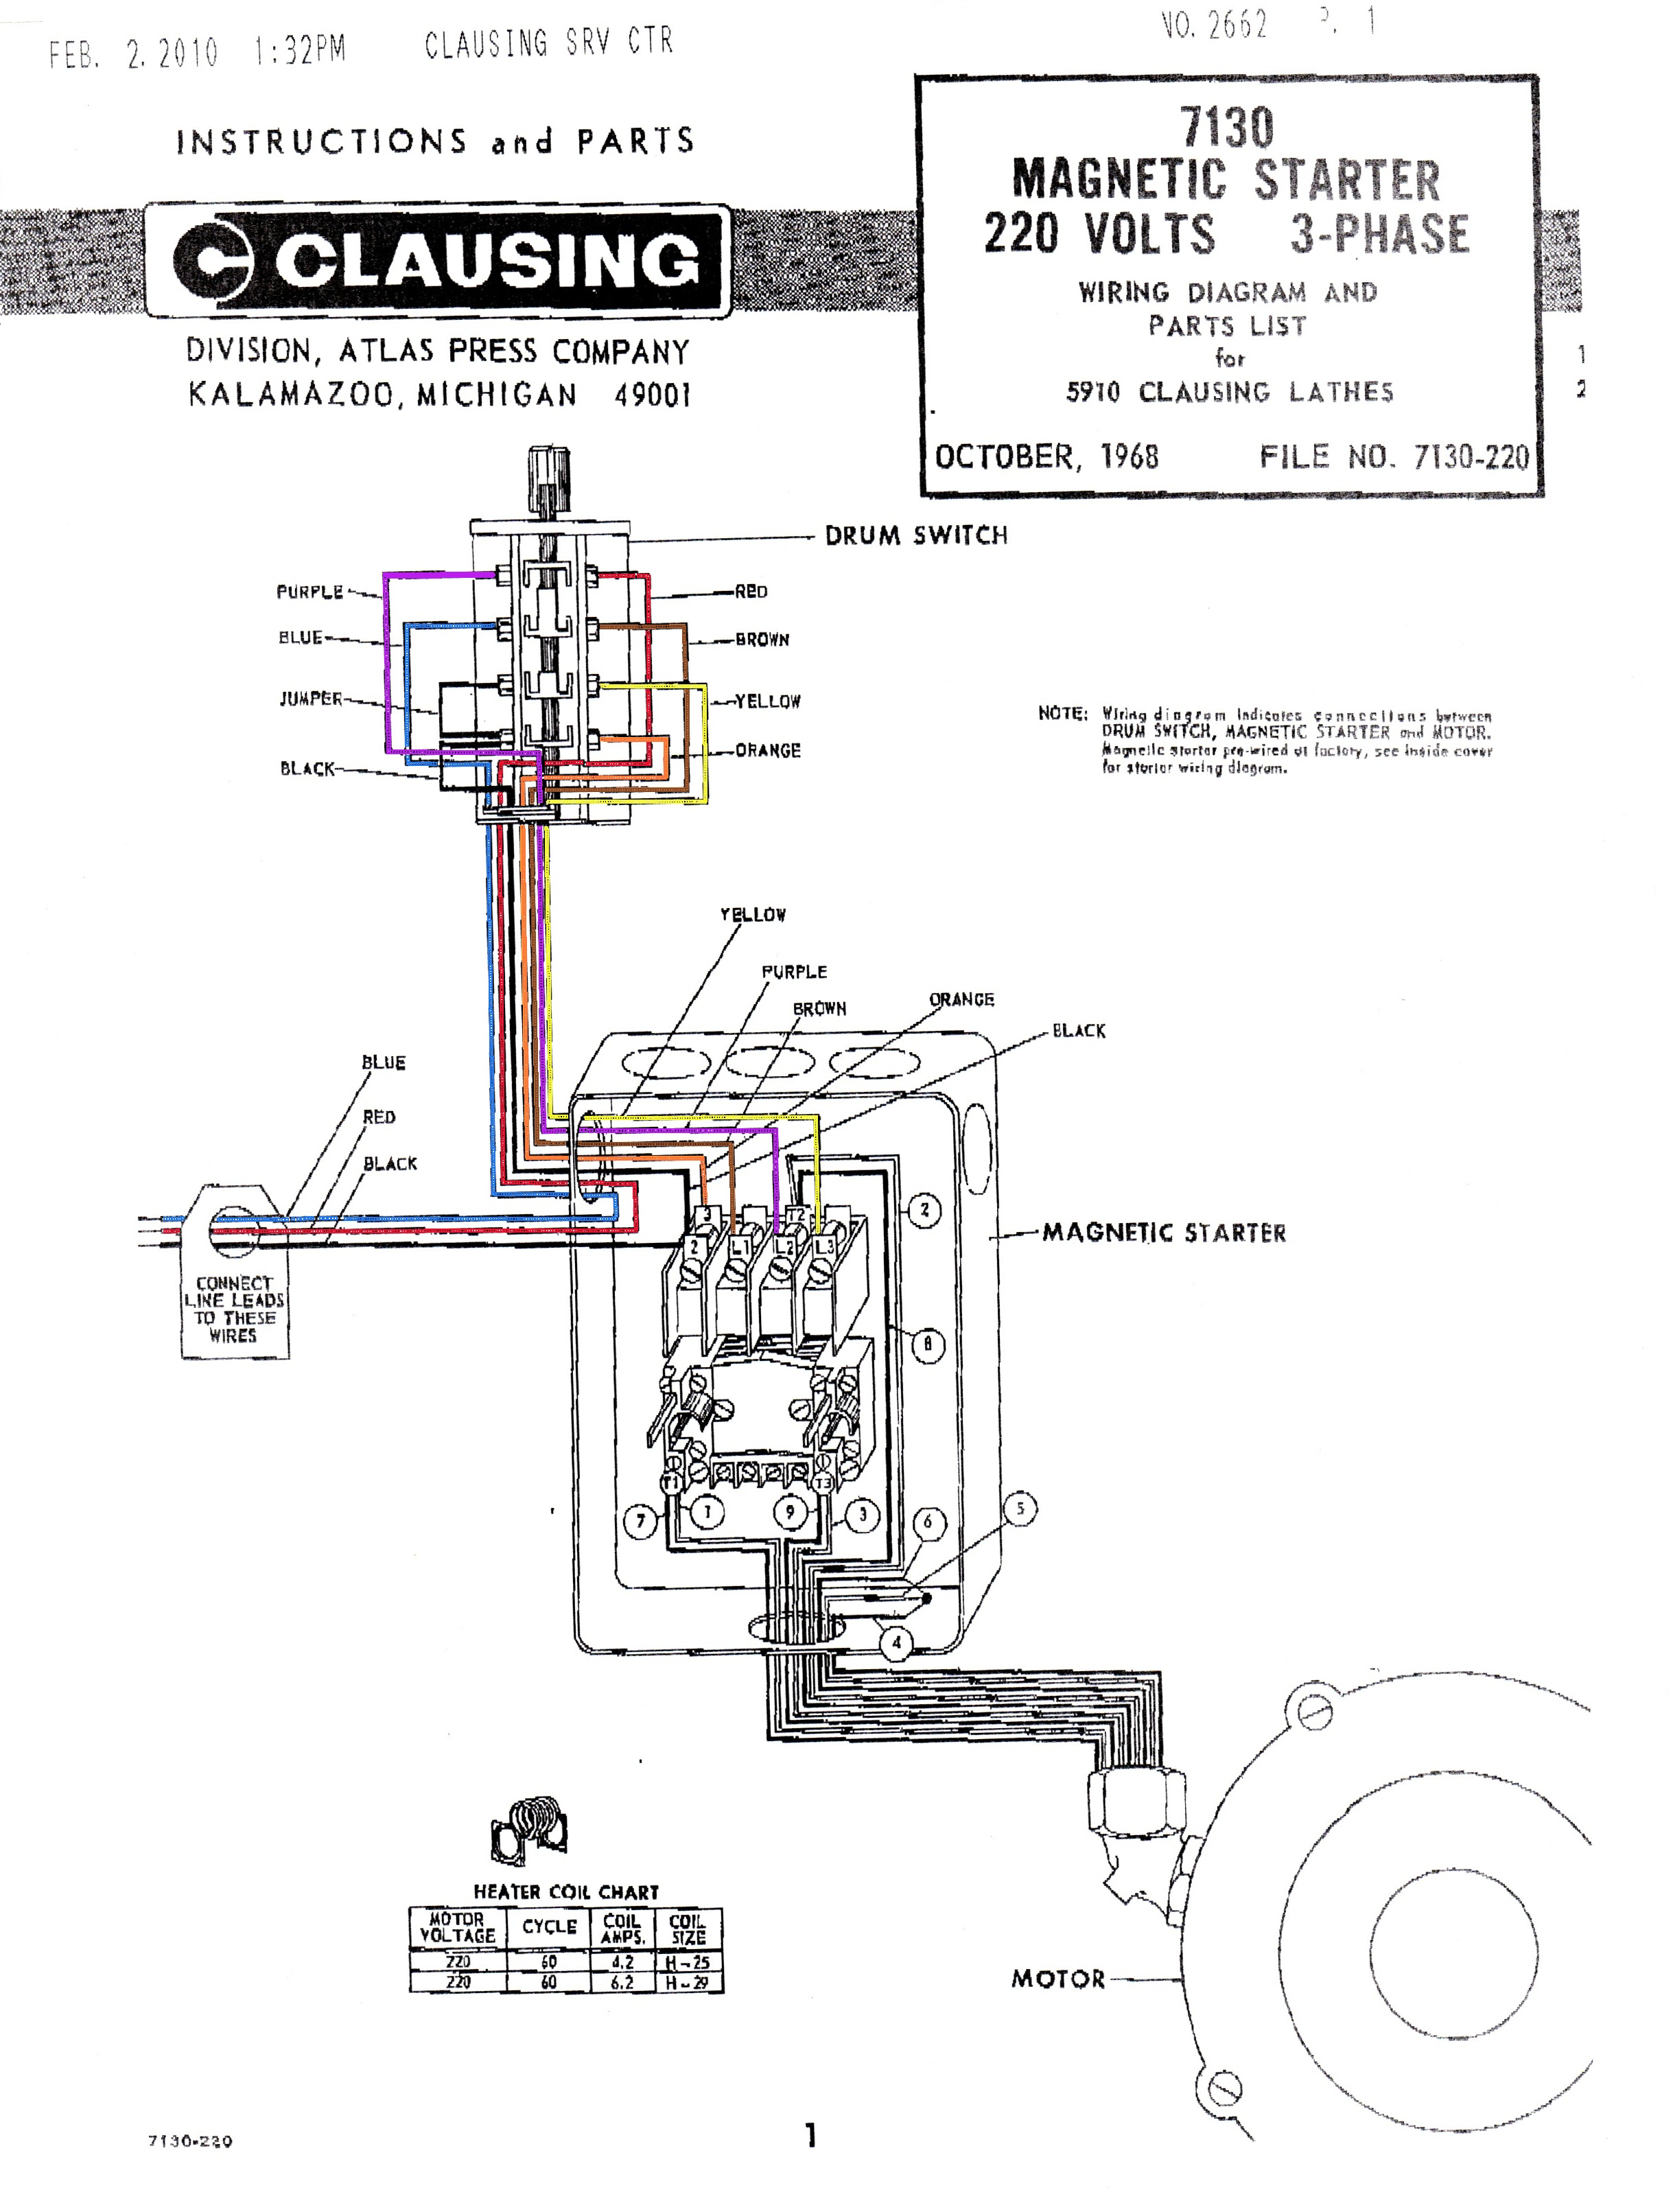 7130 Magnetic Starter Wiring Diagram Color ite motor starter wiring diagram dirty weekend hd eaton motor starter wiring diagram at honlapkeszites.co